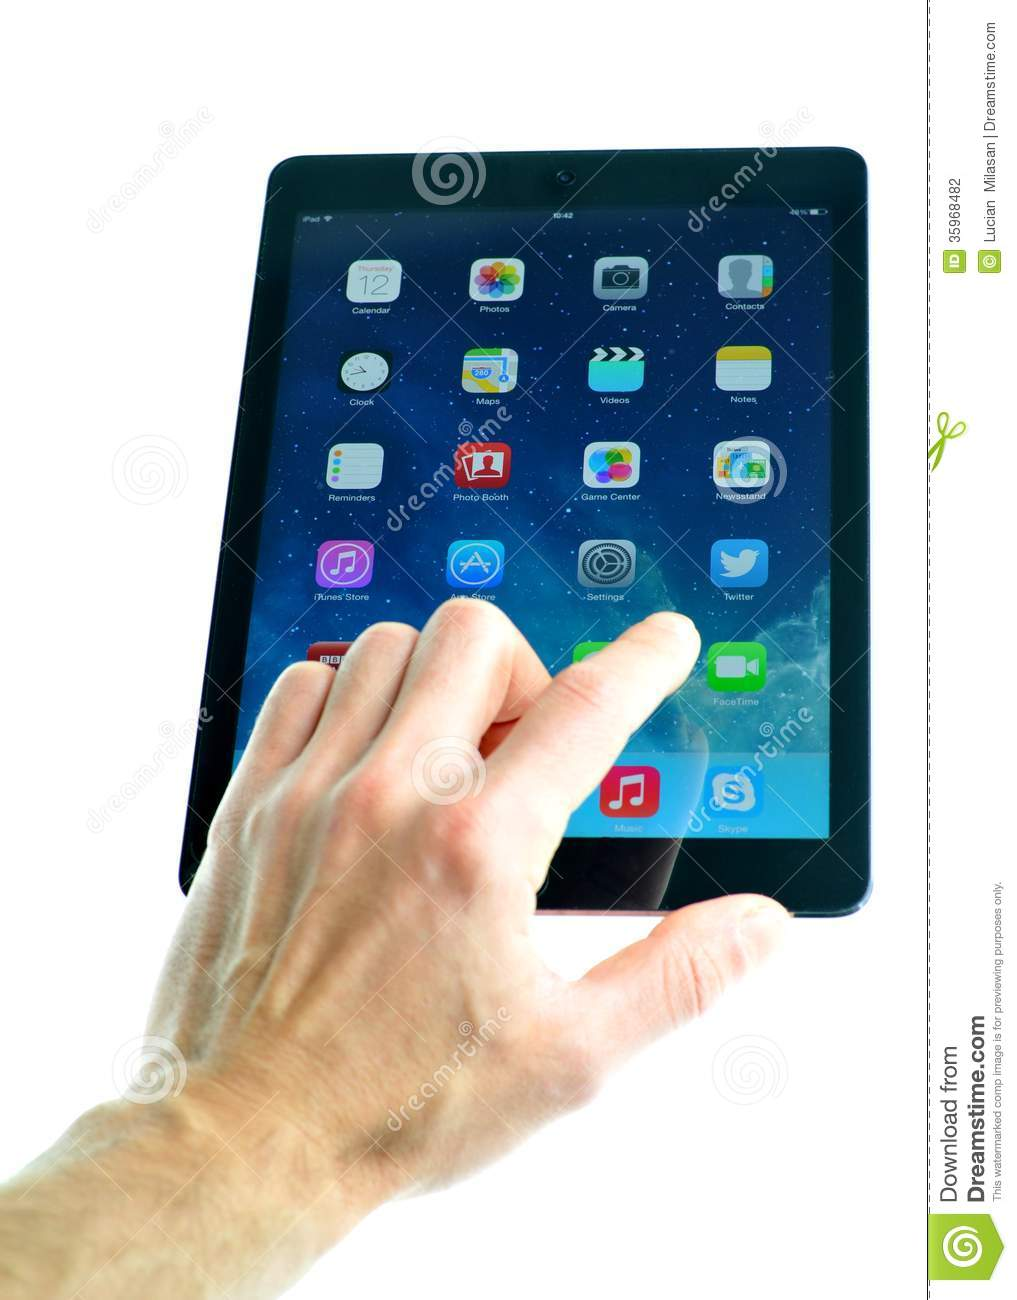 On how ebook ipad download air to